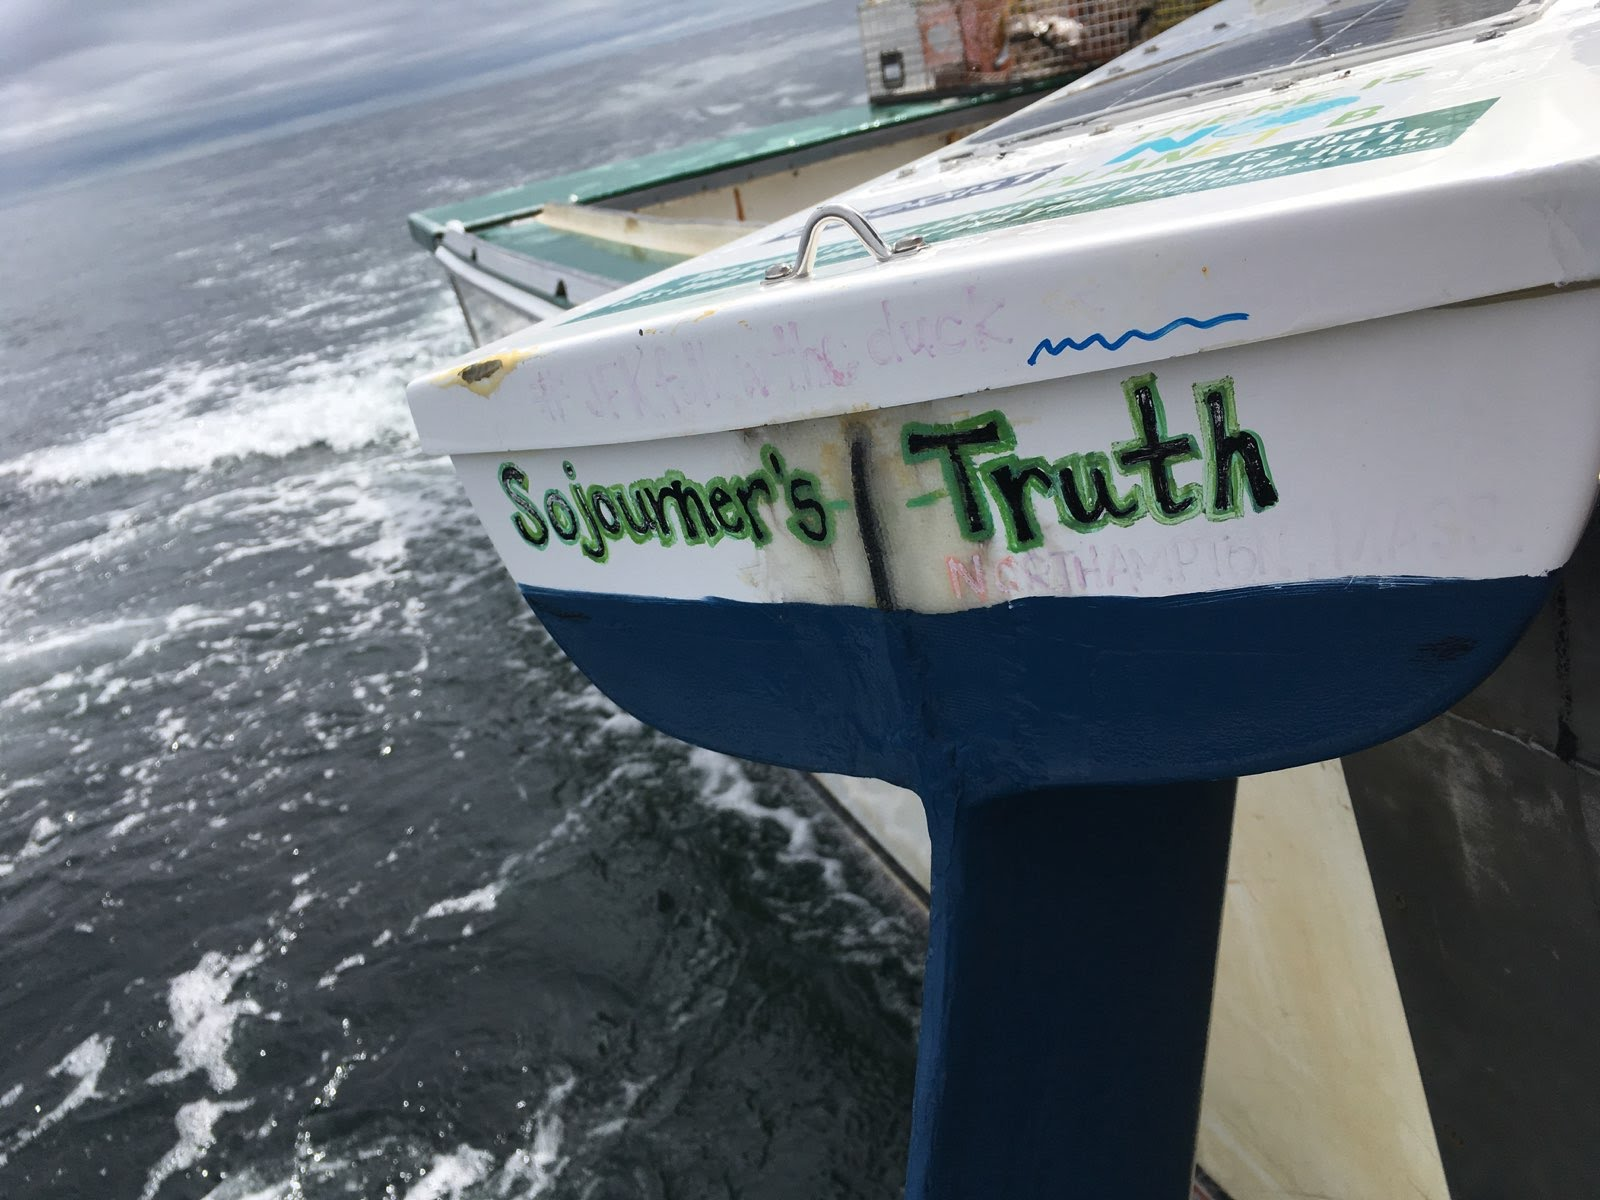 Sojourner's Truth's Second Journey